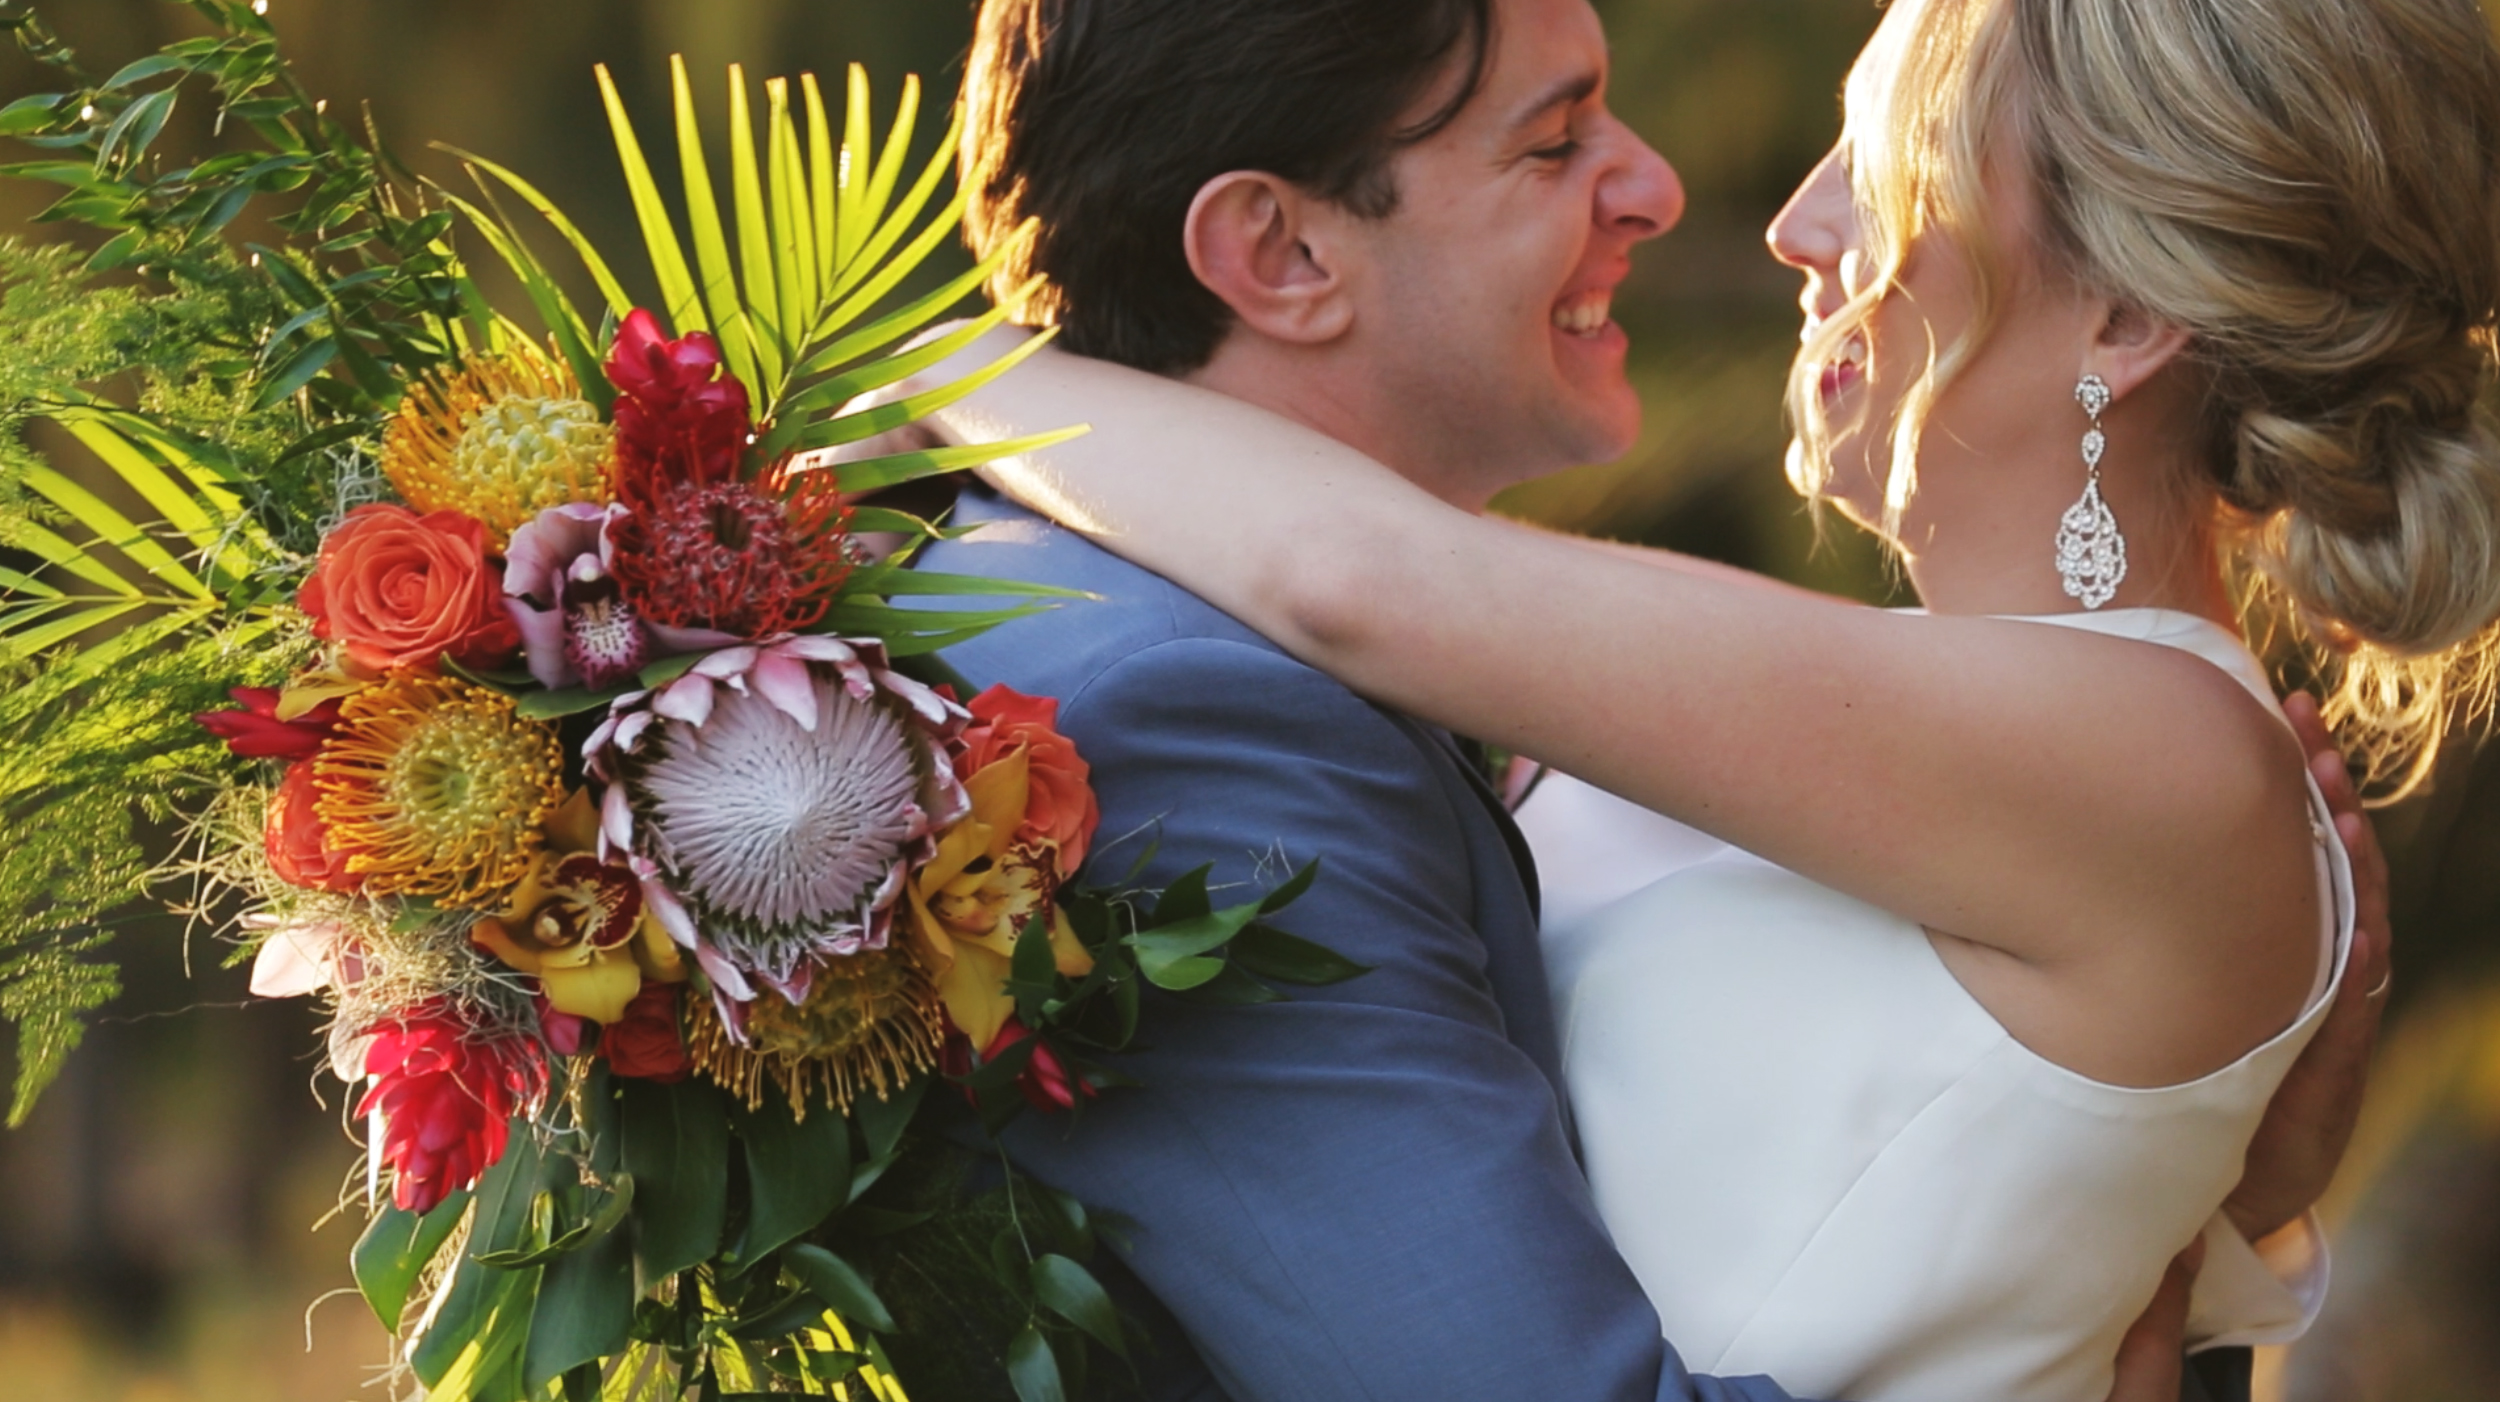 - Capture and re-live all the emotion and magical moments from your special day.